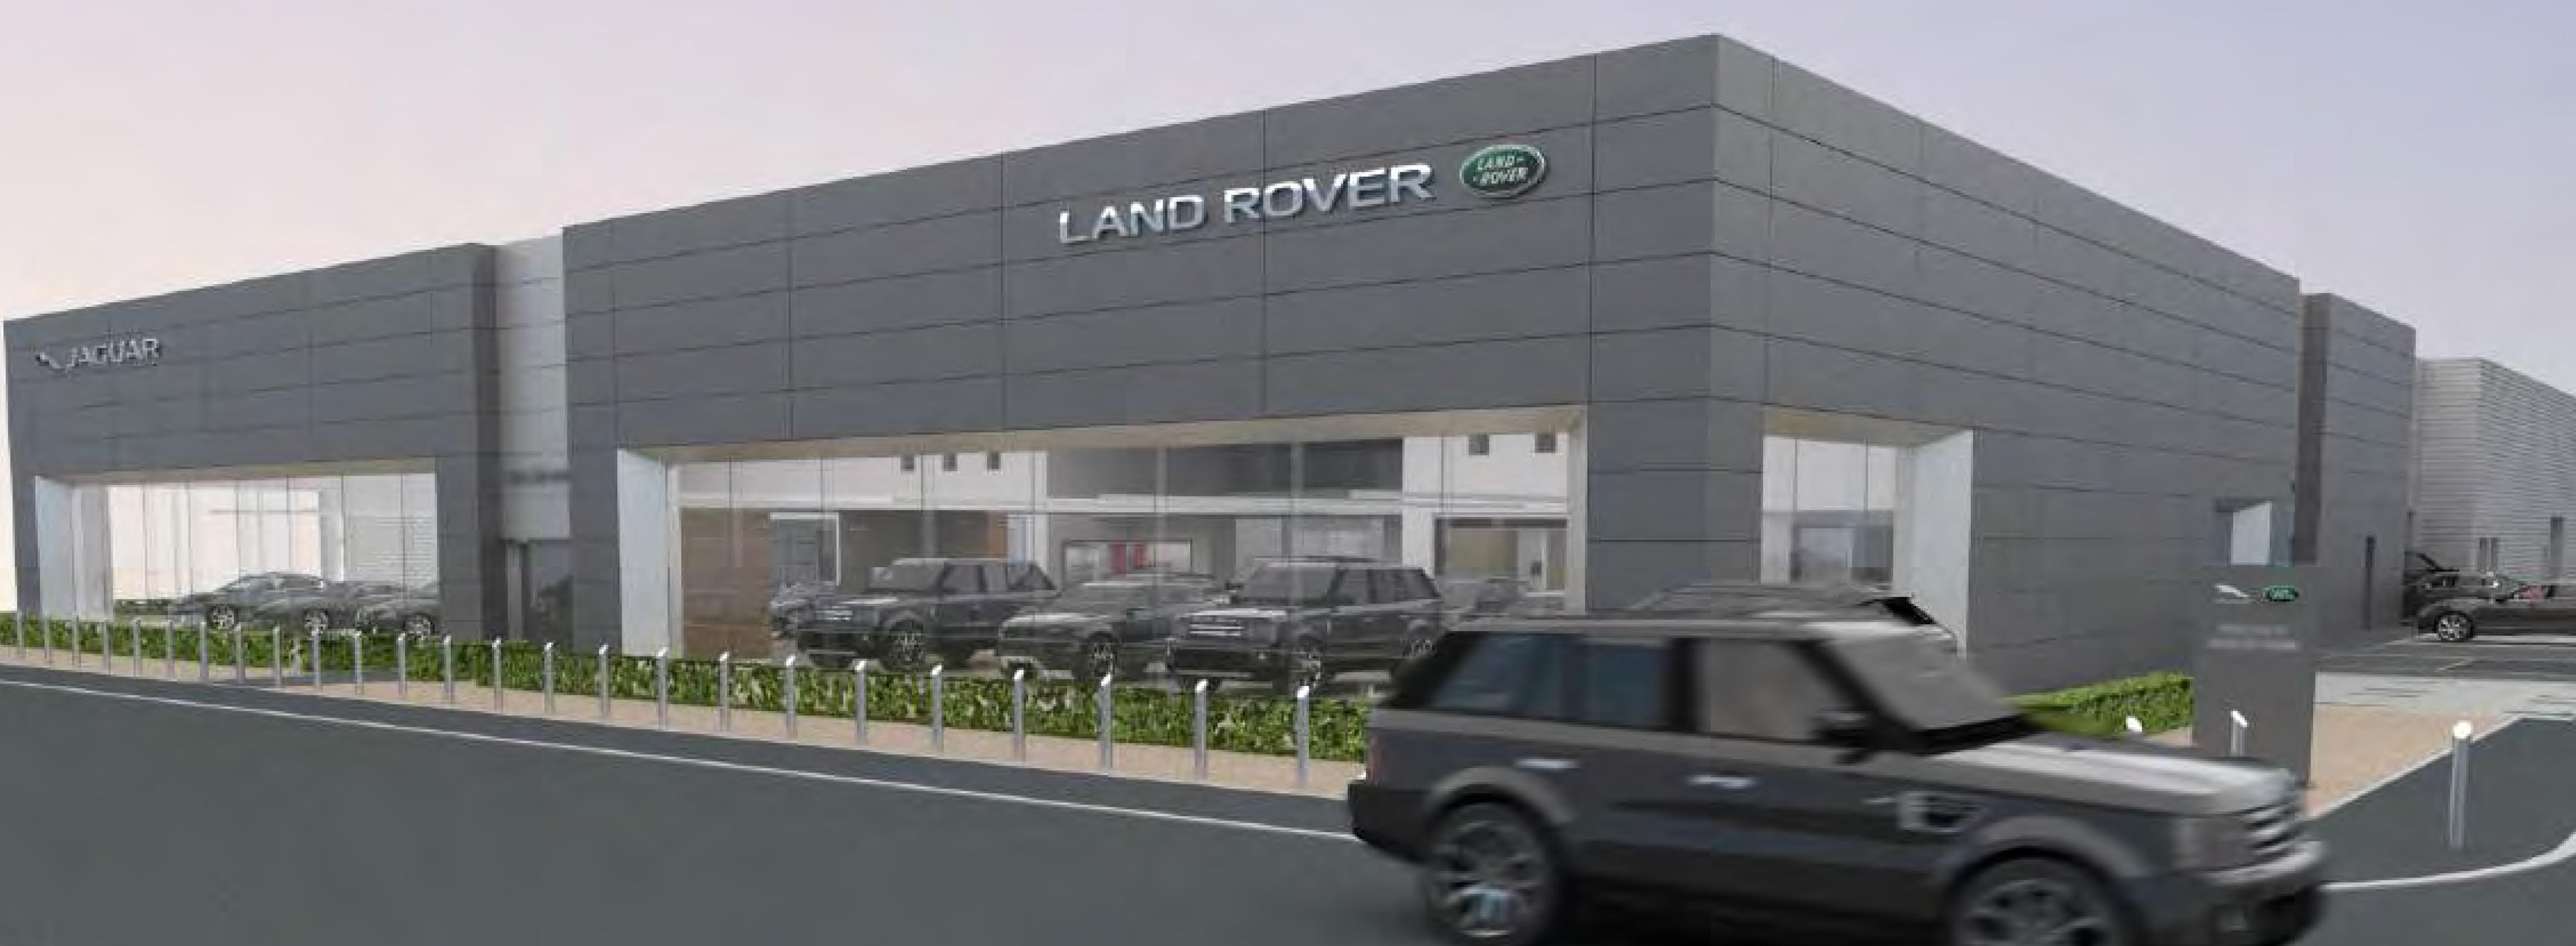 Jaguar Land Rover Retail Corporate Identity Manual R4 December 2017 Low Res1223